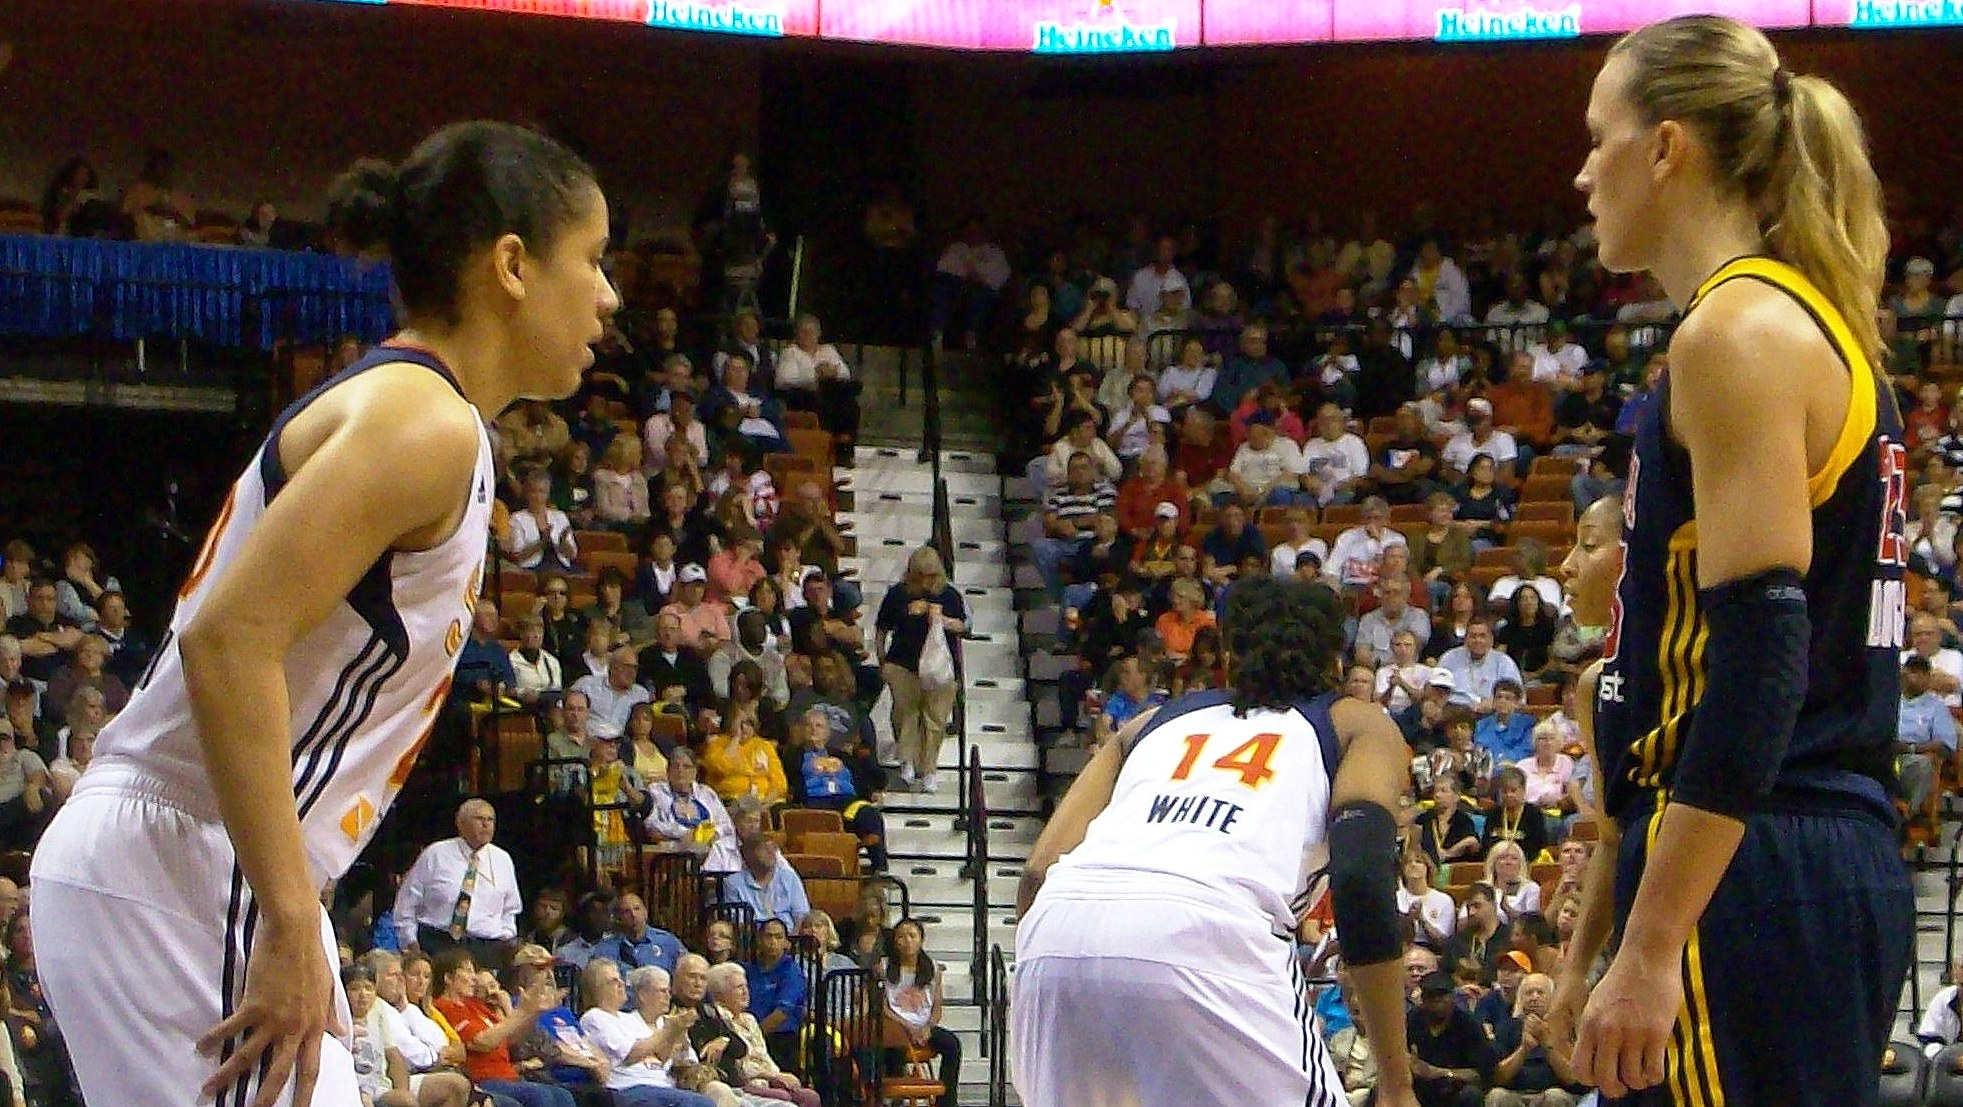 Shavonte Zellous saves the day for the Fever, Indiana douses Sun in game 2 of the Eastern Conference finals